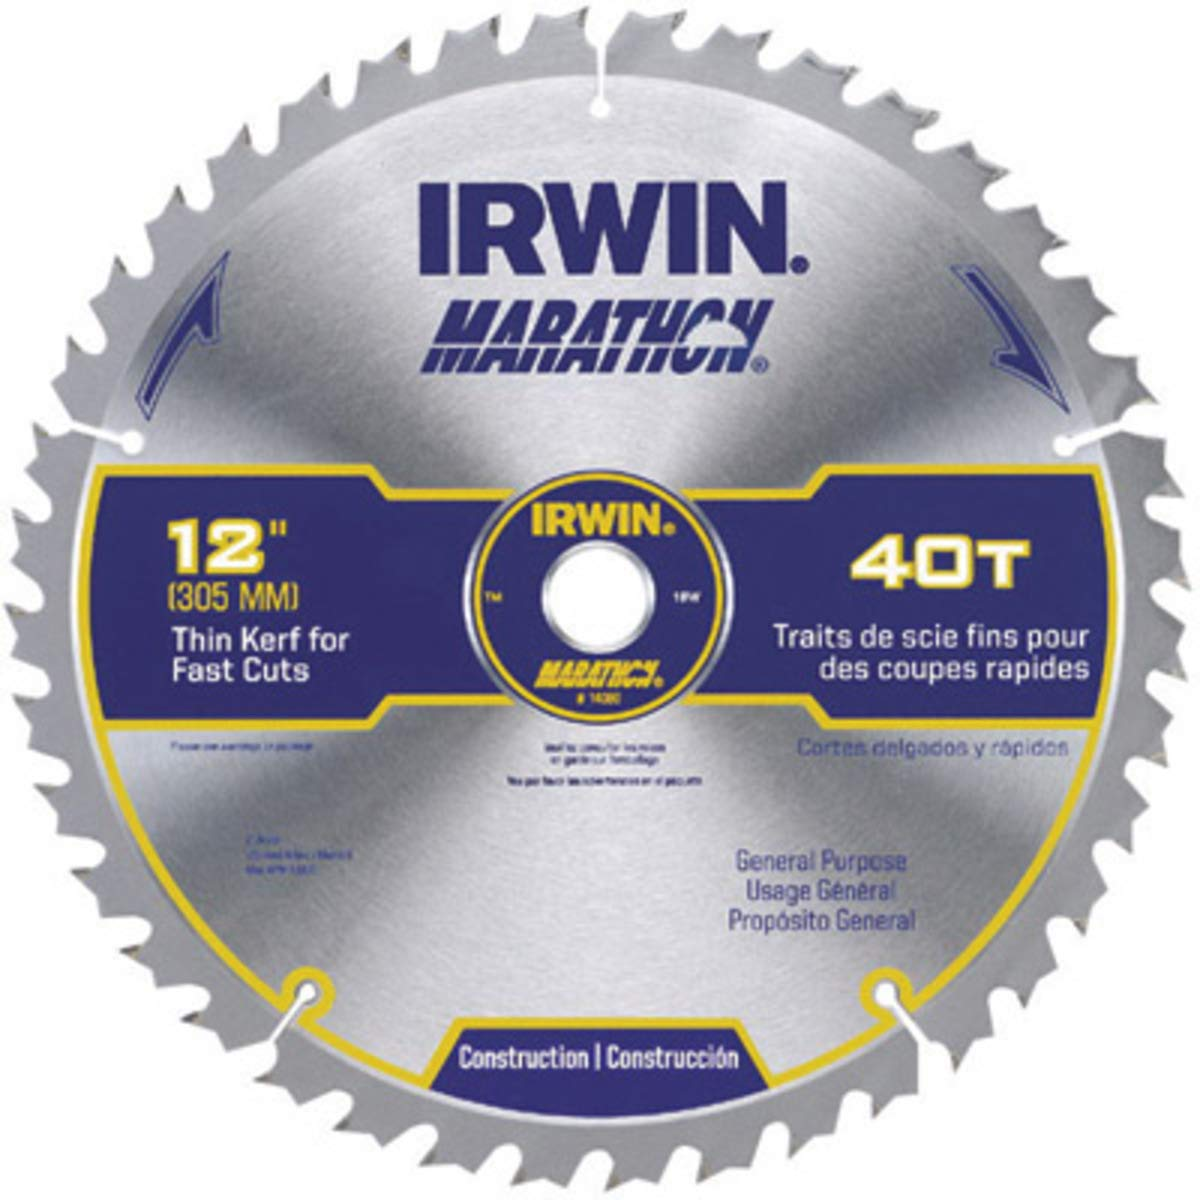 IRWIN 12'' X 1'' Diamond X .070'' 8300 RPM 40 Teeth ATB Grind Vise, Grip Marathon Carbide Tipped Circular Saw Blade (For Use With Miter/Table Saw) (Carded), 1 Each